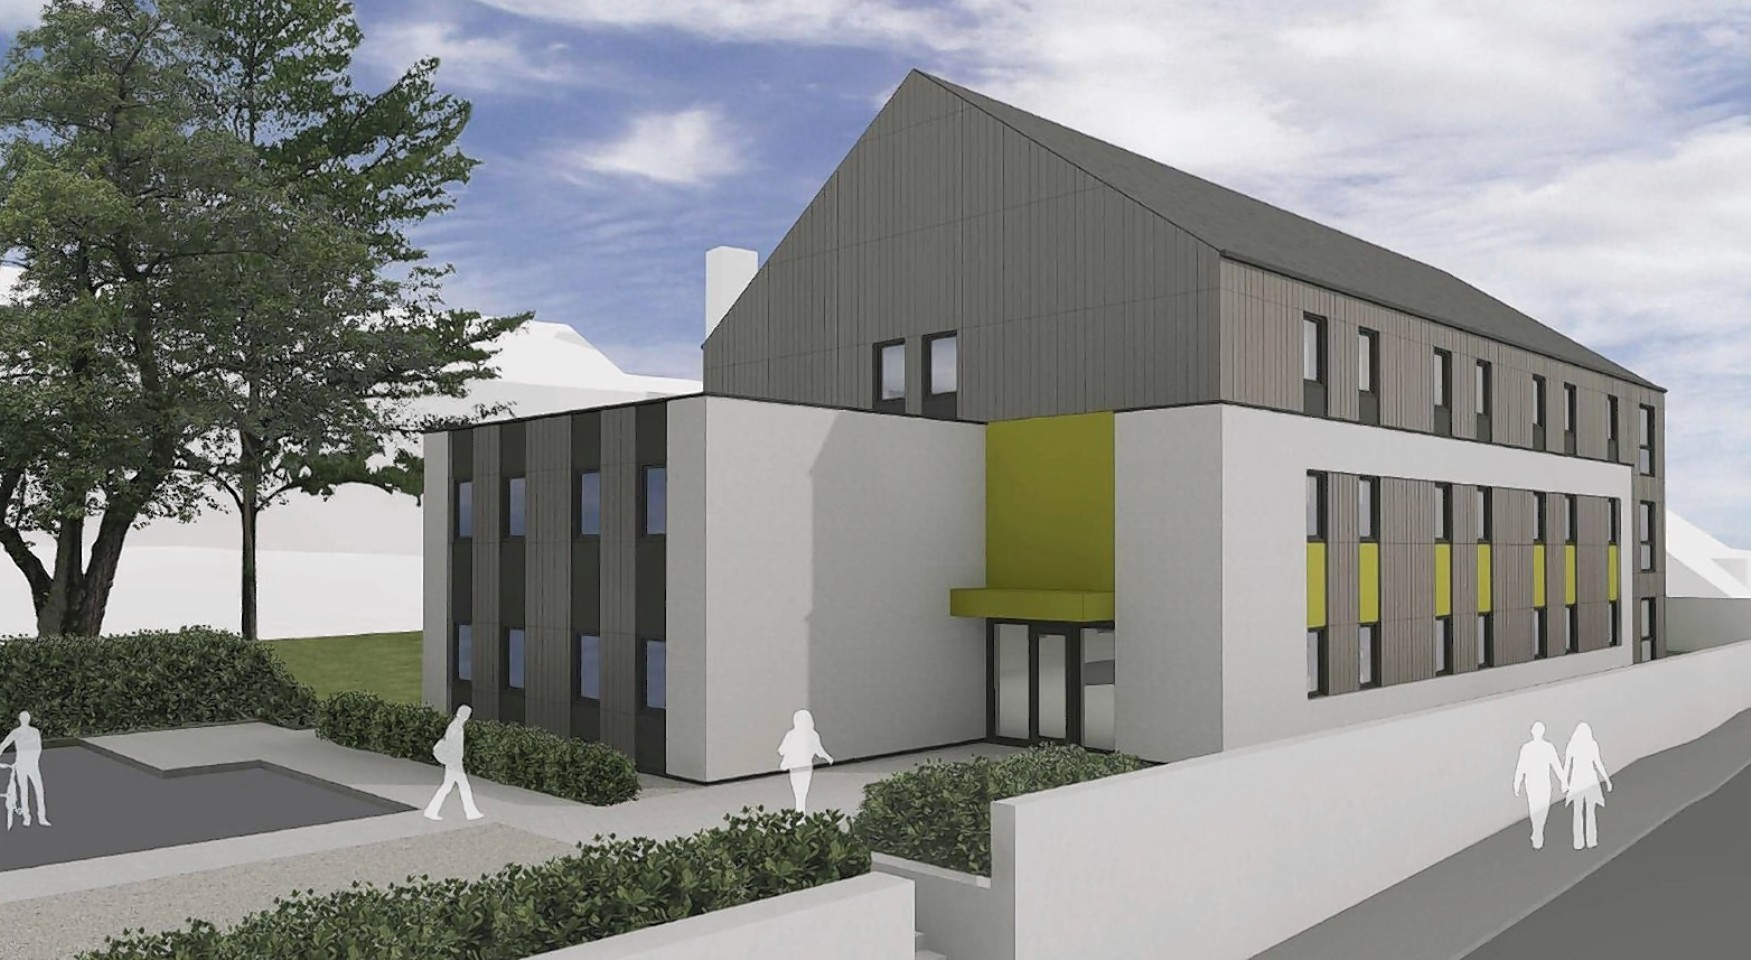 An artist's impression of the student accommodation at Fassifern Road, Fort William